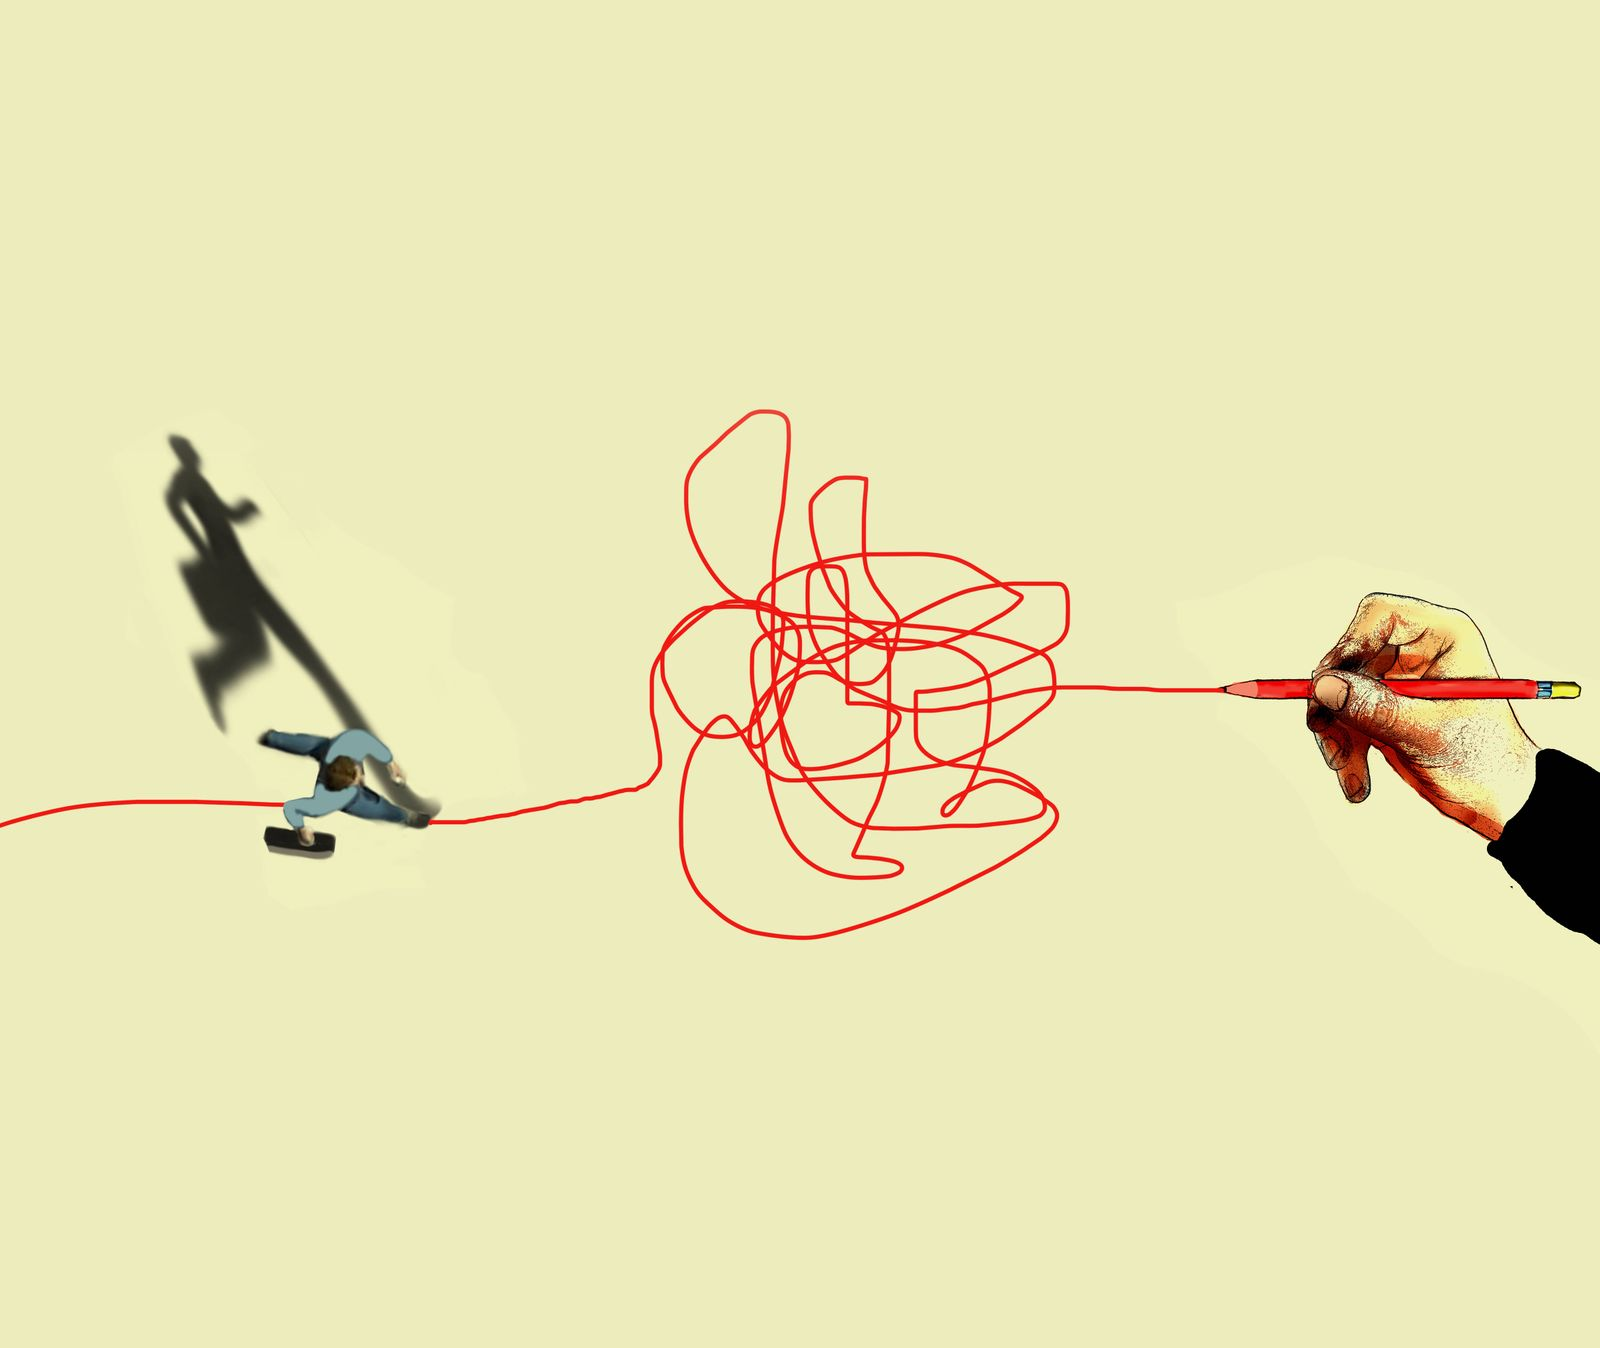 Trouble ahead, conceptual illustration Trouble ahead, conceptual illustration. Aerial view of a businessman running into